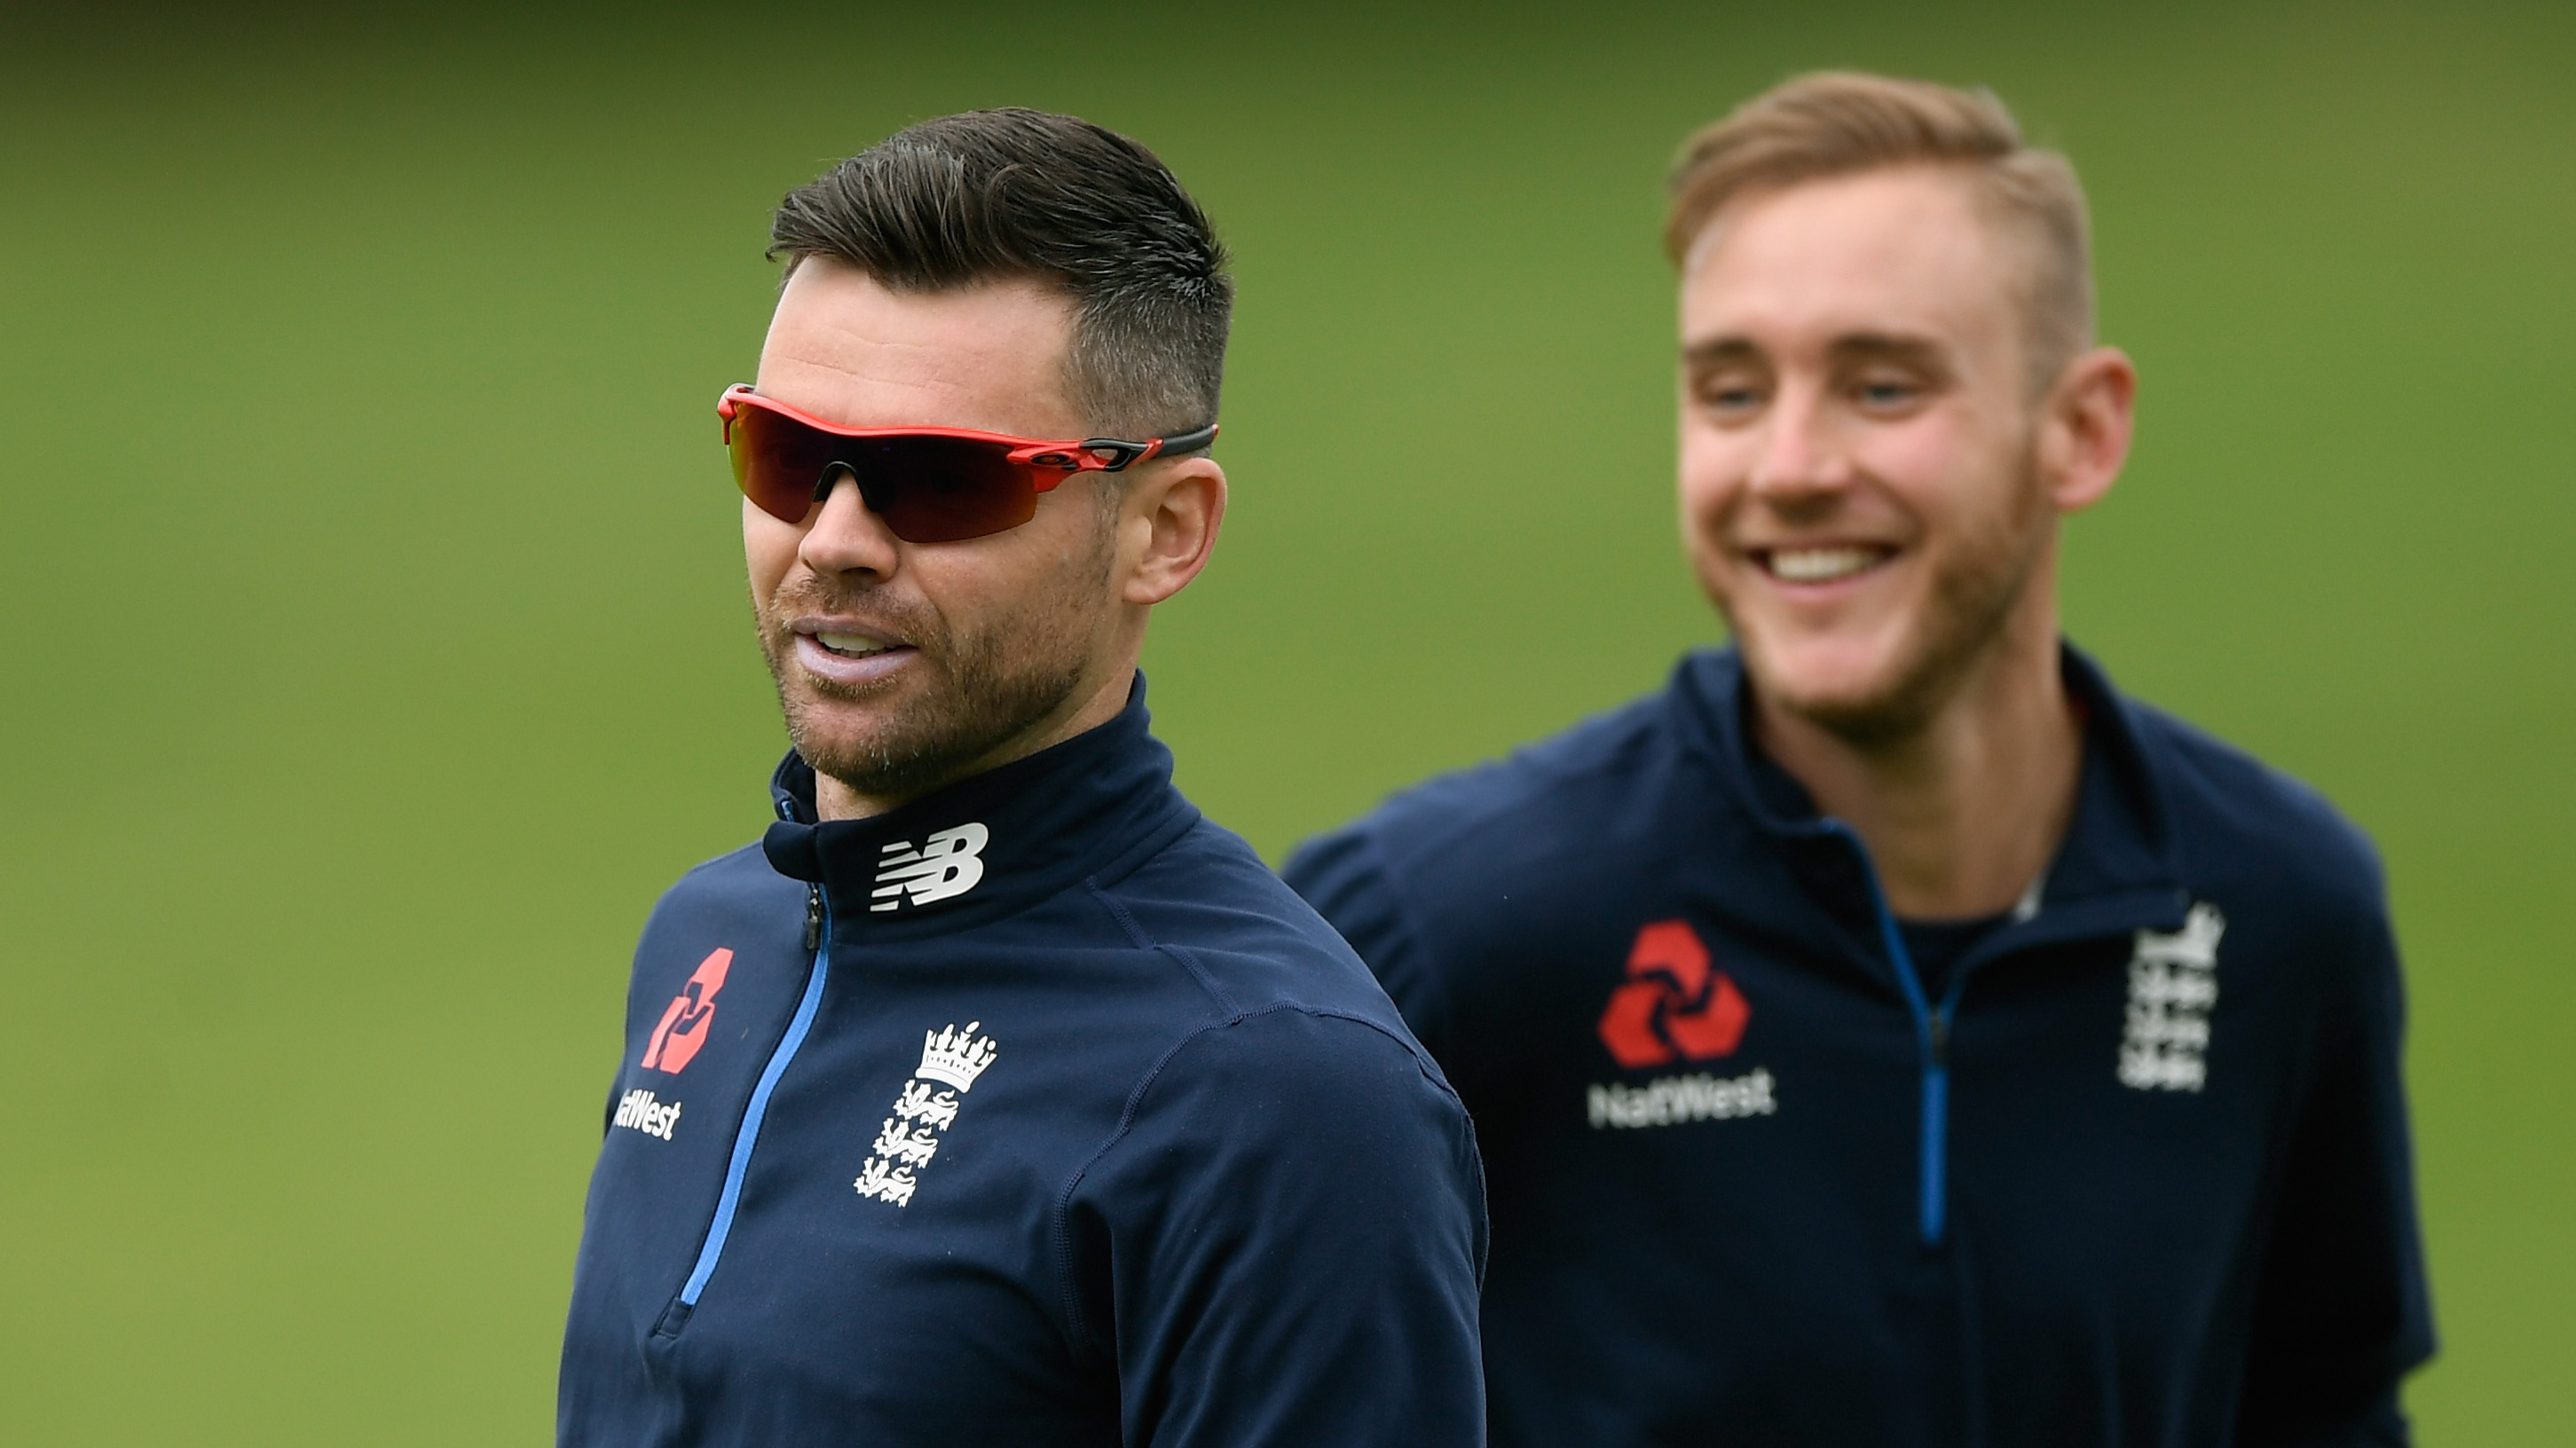 James Anderson, Stuart Broad indulge in a friendly Twitter banter